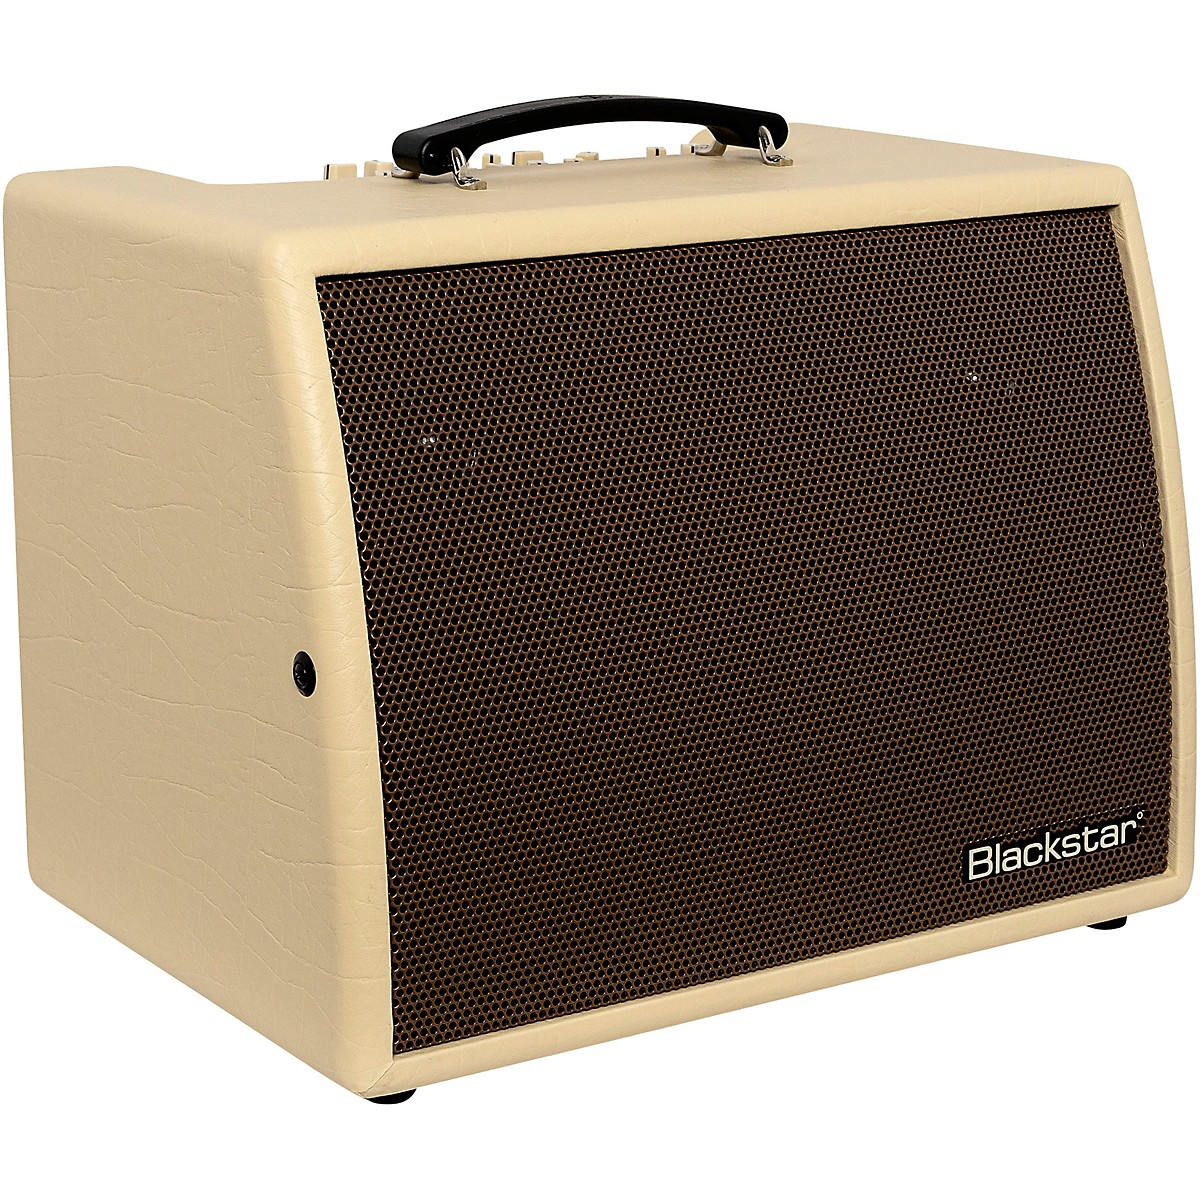 Blackstar Sonnet 120 120W 1x8 Acoustic Combo Amplifier